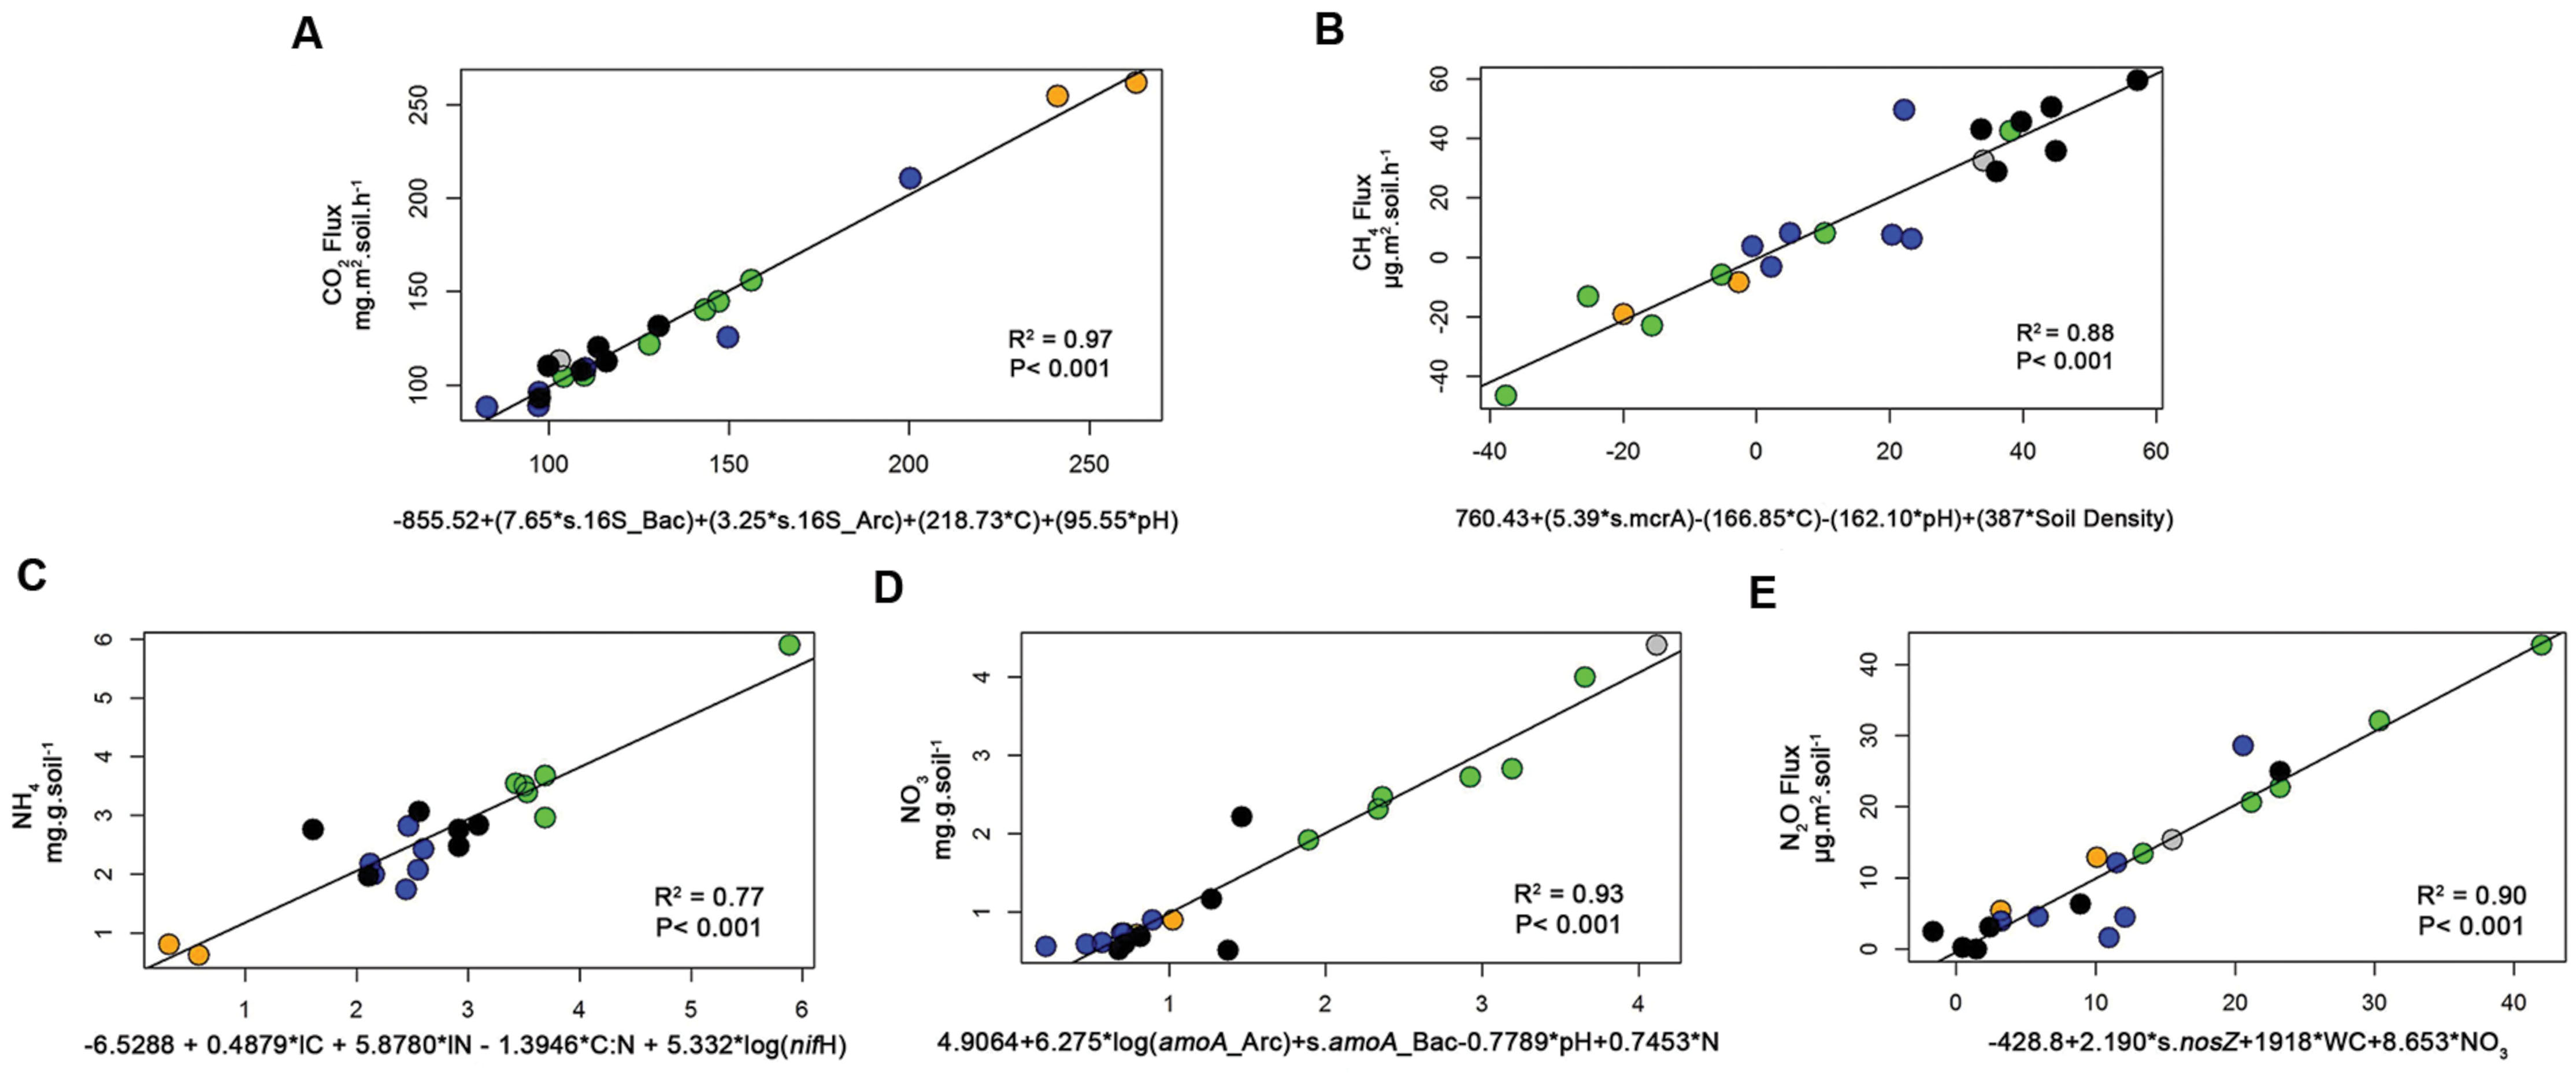 frontiers specific microbial gene abundances and soil parameters